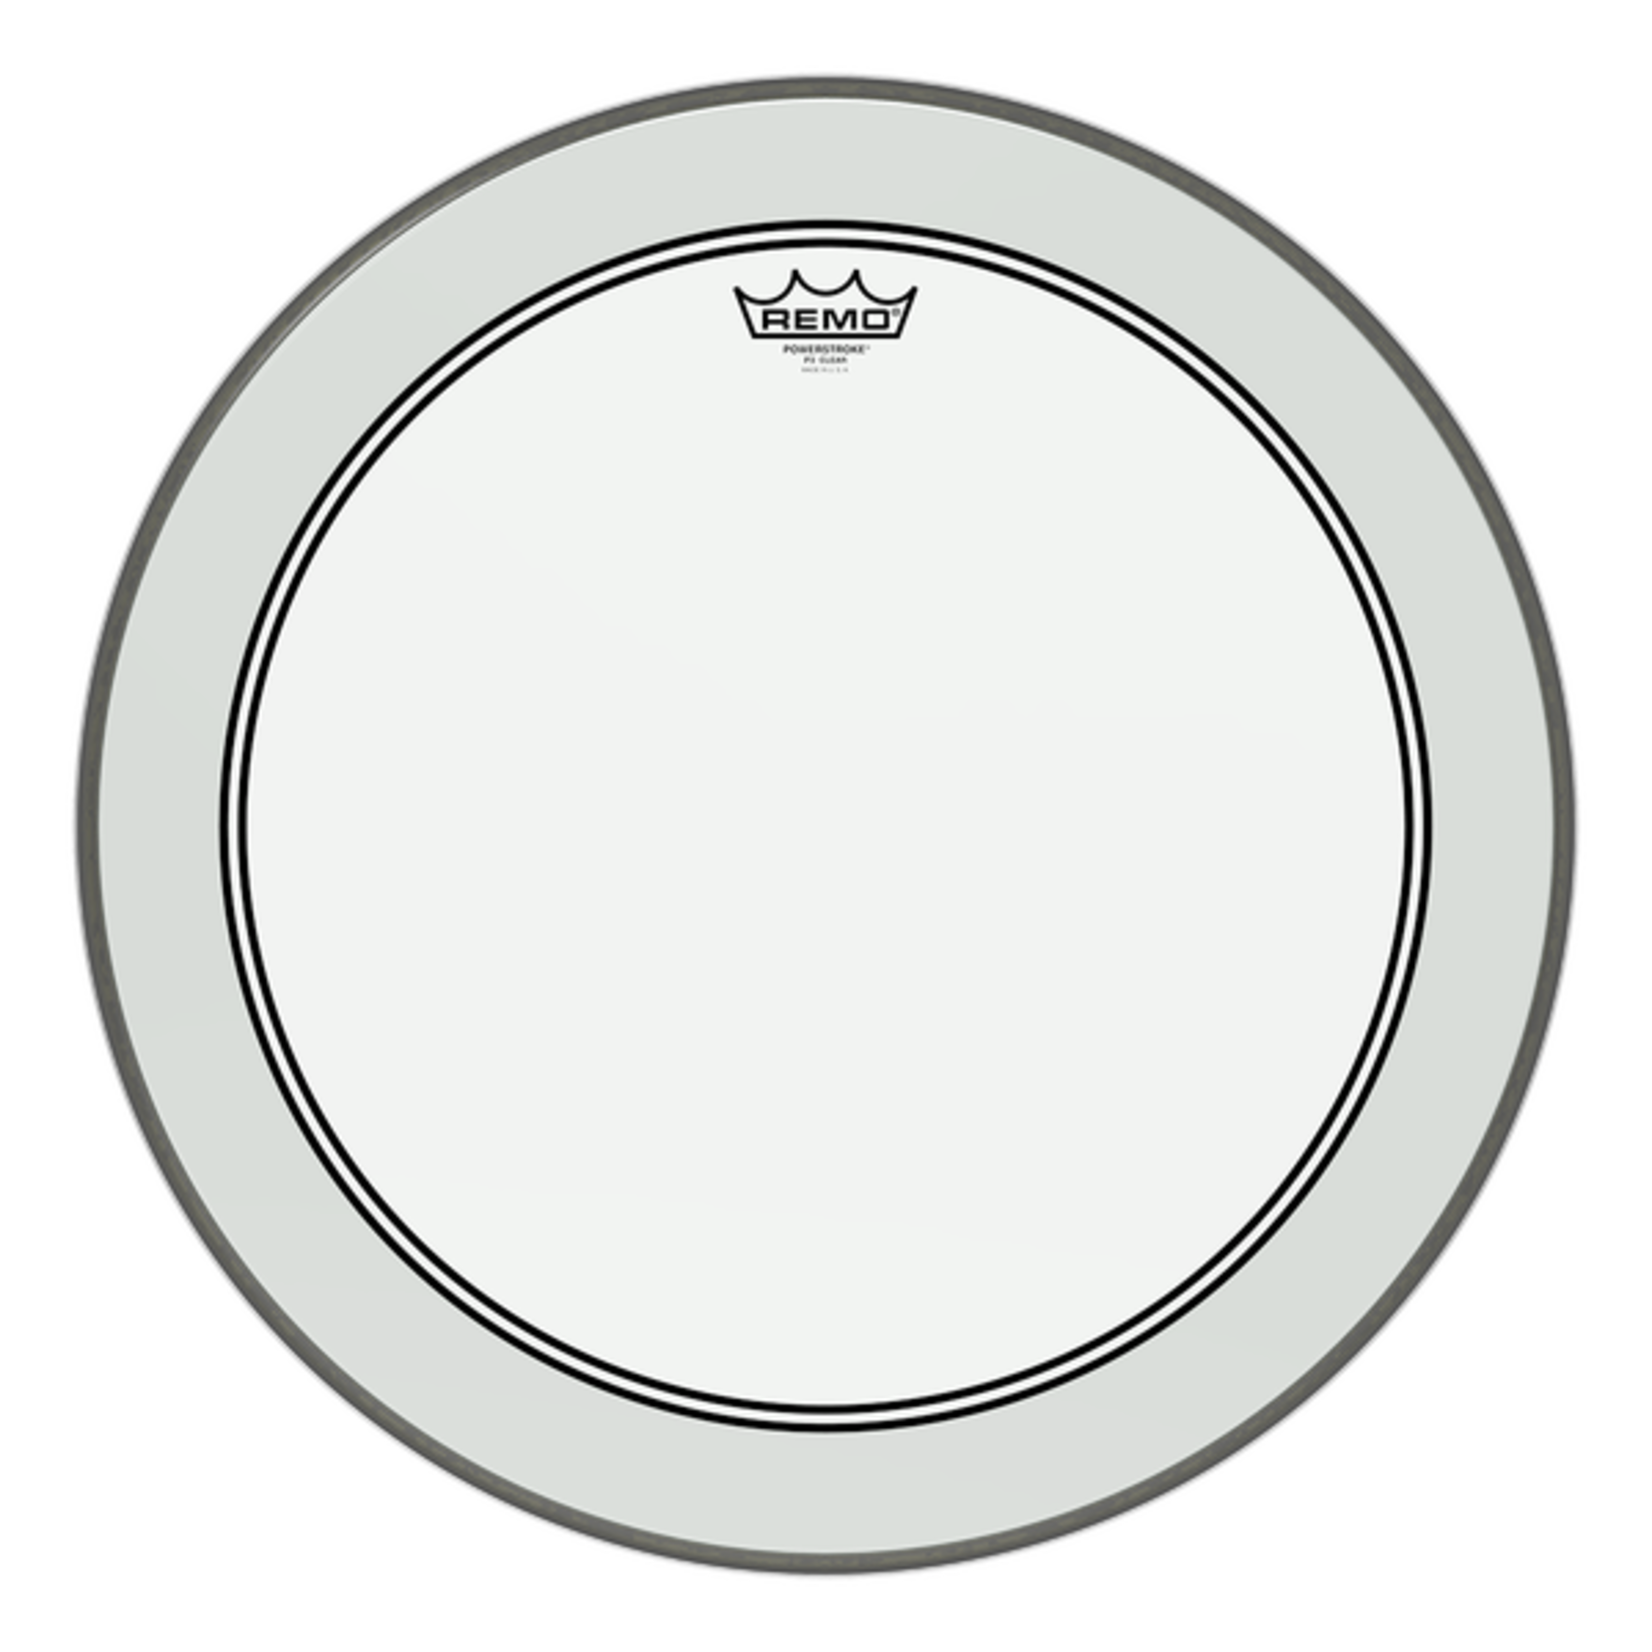 Remo Remo Clear Powerstroke 3 Bass Drum